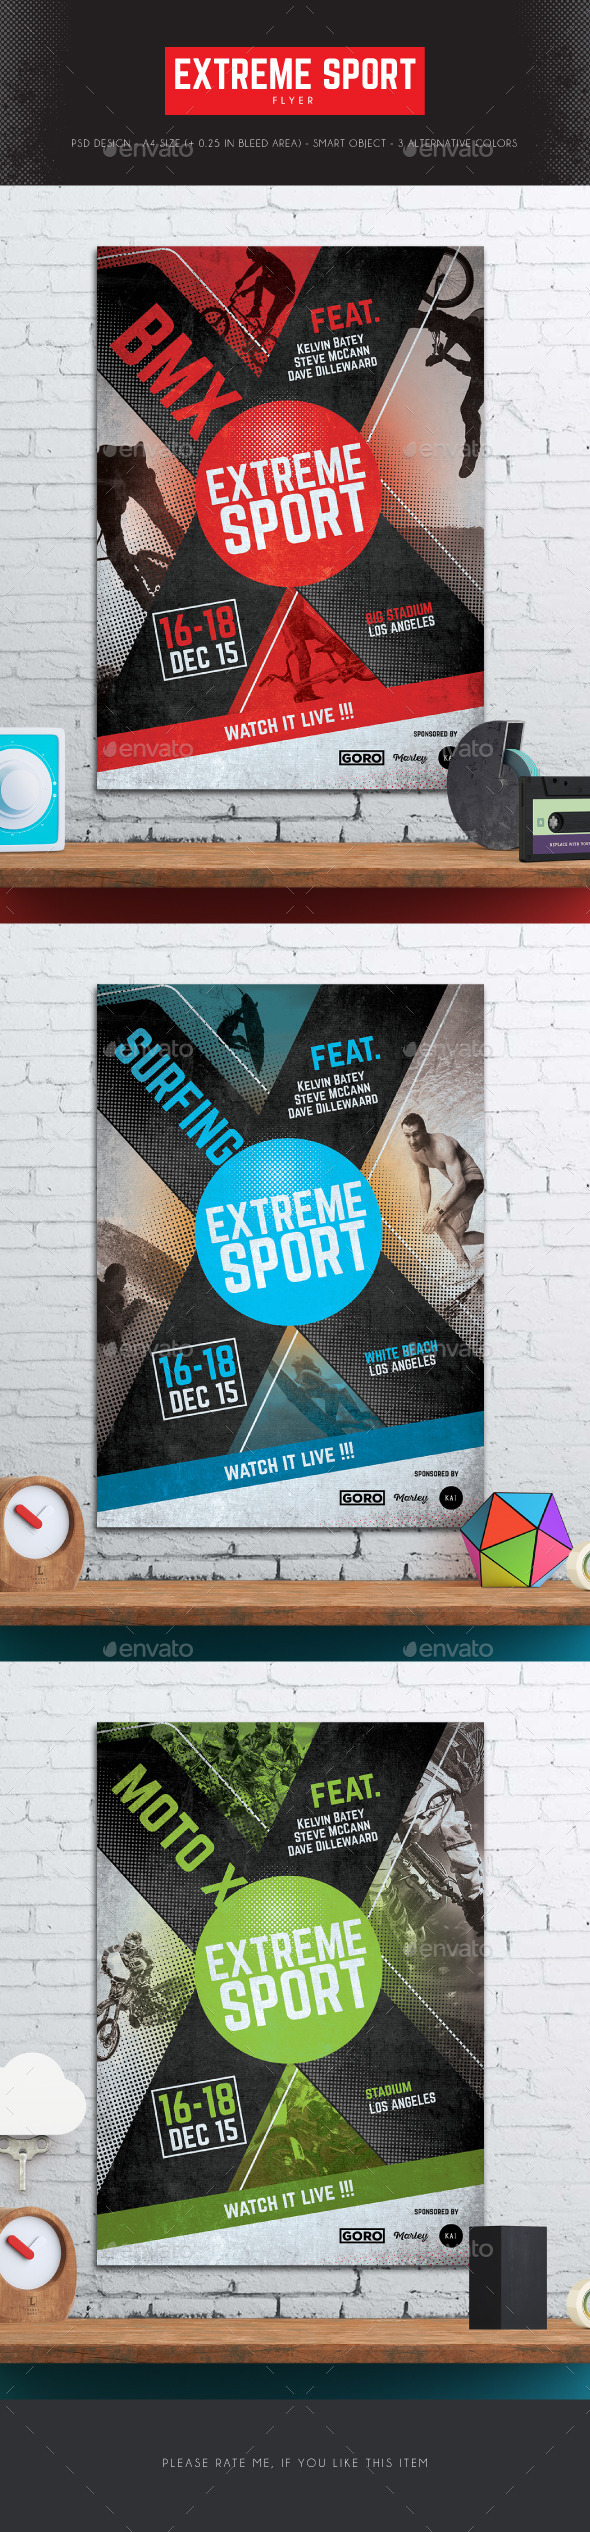 Extreme Sport Flyer